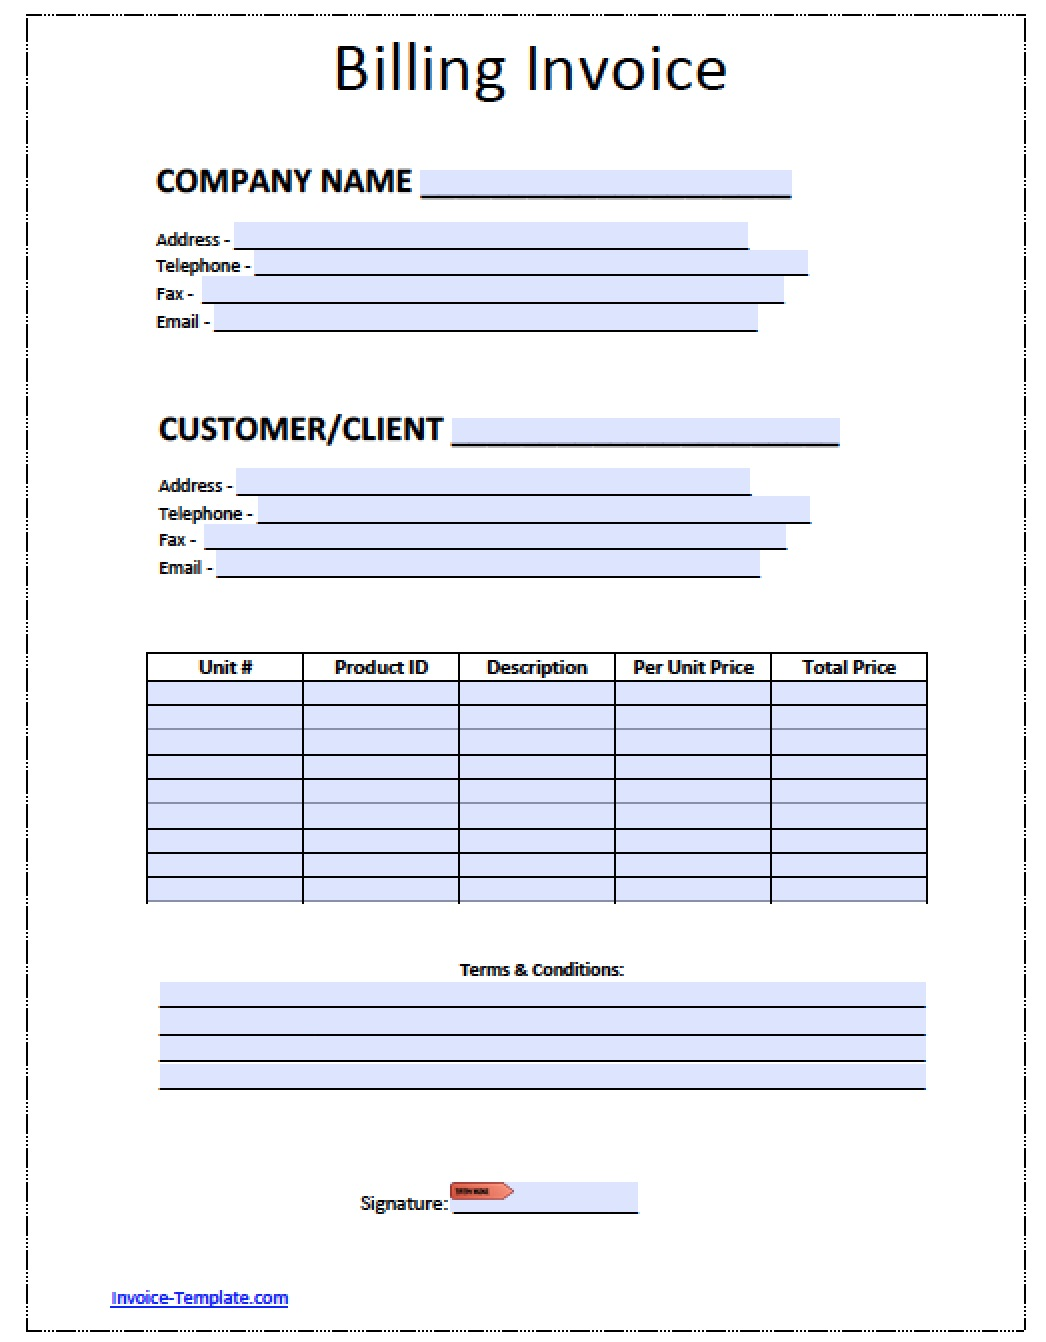 Carsforlessus  Marvelous Billing Invoice Invoices Faq U Cloudflare Support Billing  With Lovely Free Billing Invoice Template  Excel  Pdf  Word Doc  Billing With Amusing Tax Invoice Template Free Download Also Free Tax Invoice Template Australia Download In Addition Mexico Commercial Invoice And Invoice Templates Free Uk As Well As Payment Method Invoice Additionally How To Manage Invoices From Happytomco With Carsforlessus  Lovely Billing Invoice Invoices Faq U Cloudflare Support Billing  With Amusing Free Billing Invoice Template  Excel  Pdf  Word Doc  Billing And Marvelous Tax Invoice Template Free Download Also Free Tax Invoice Template Australia Download In Addition Mexico Commercial Invoice From Happytomco